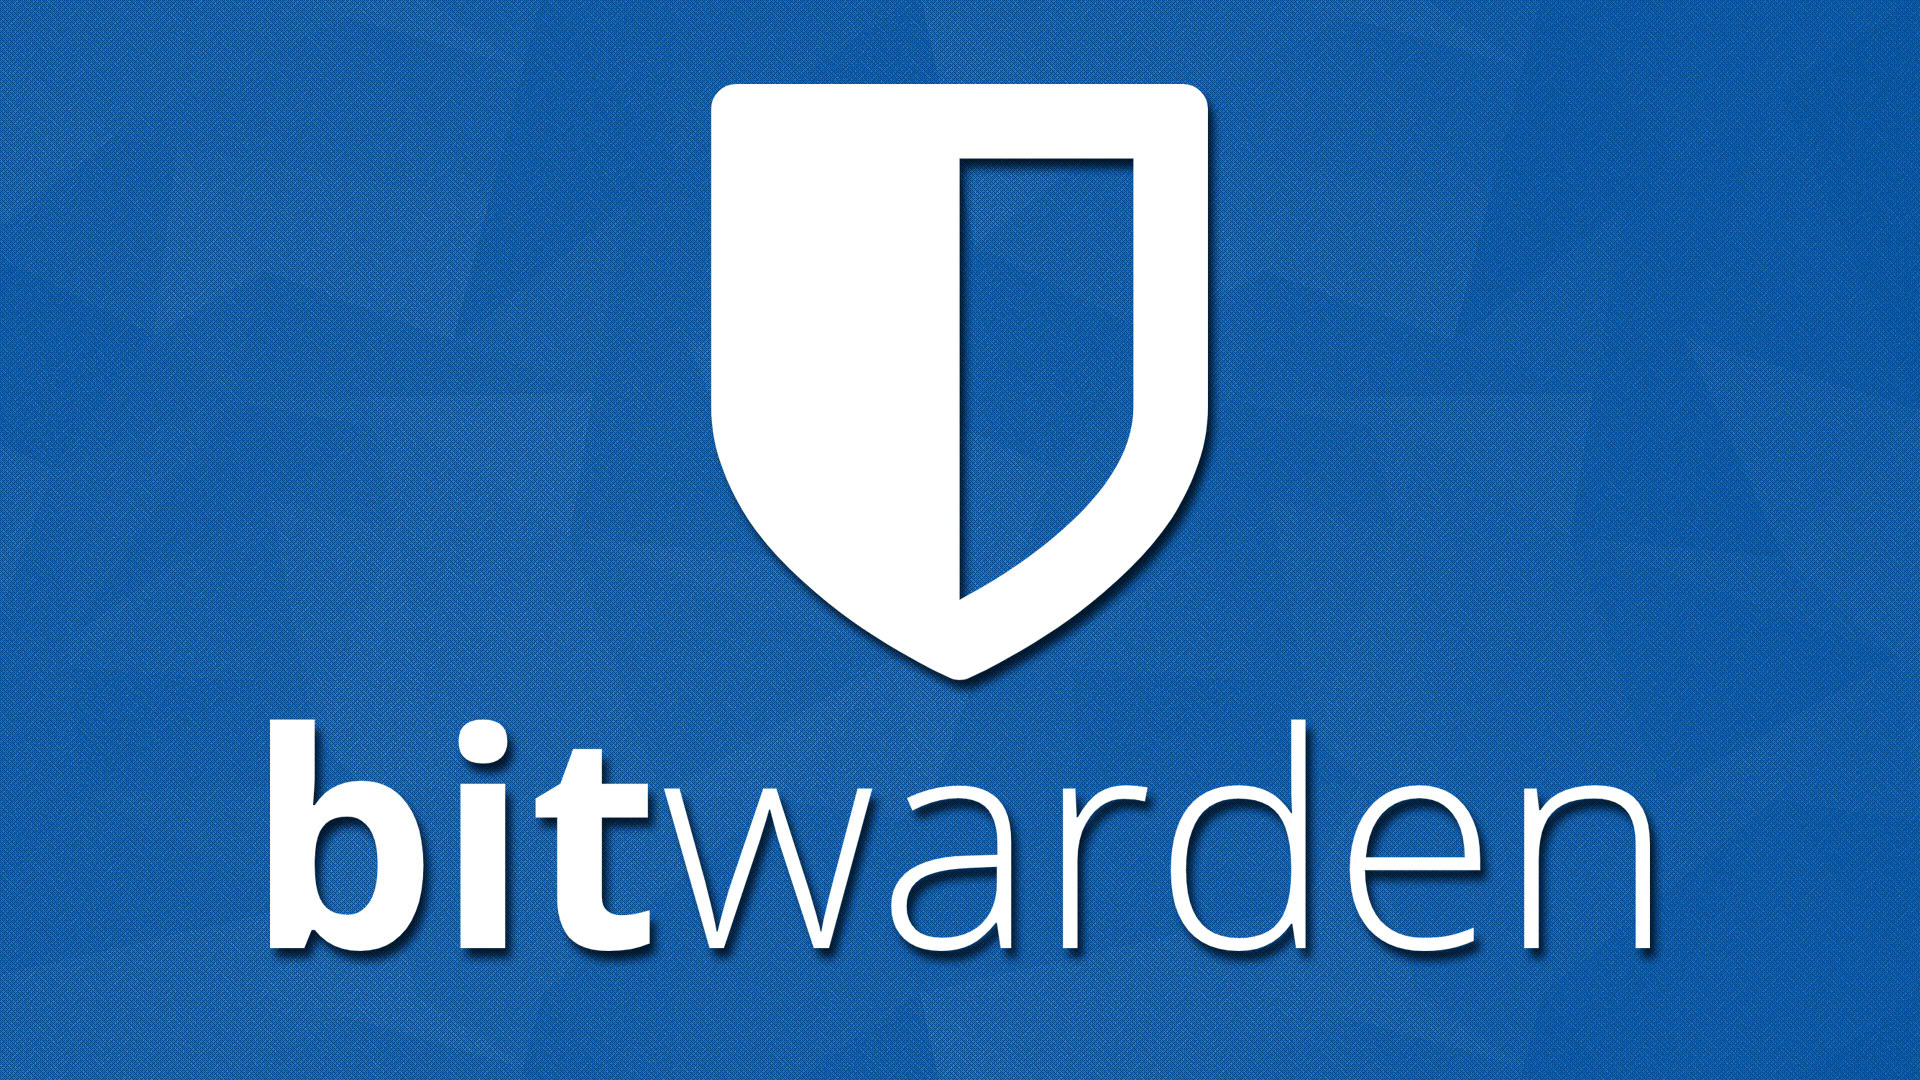 Bitwarden password manager adds encrypted text and file sharing